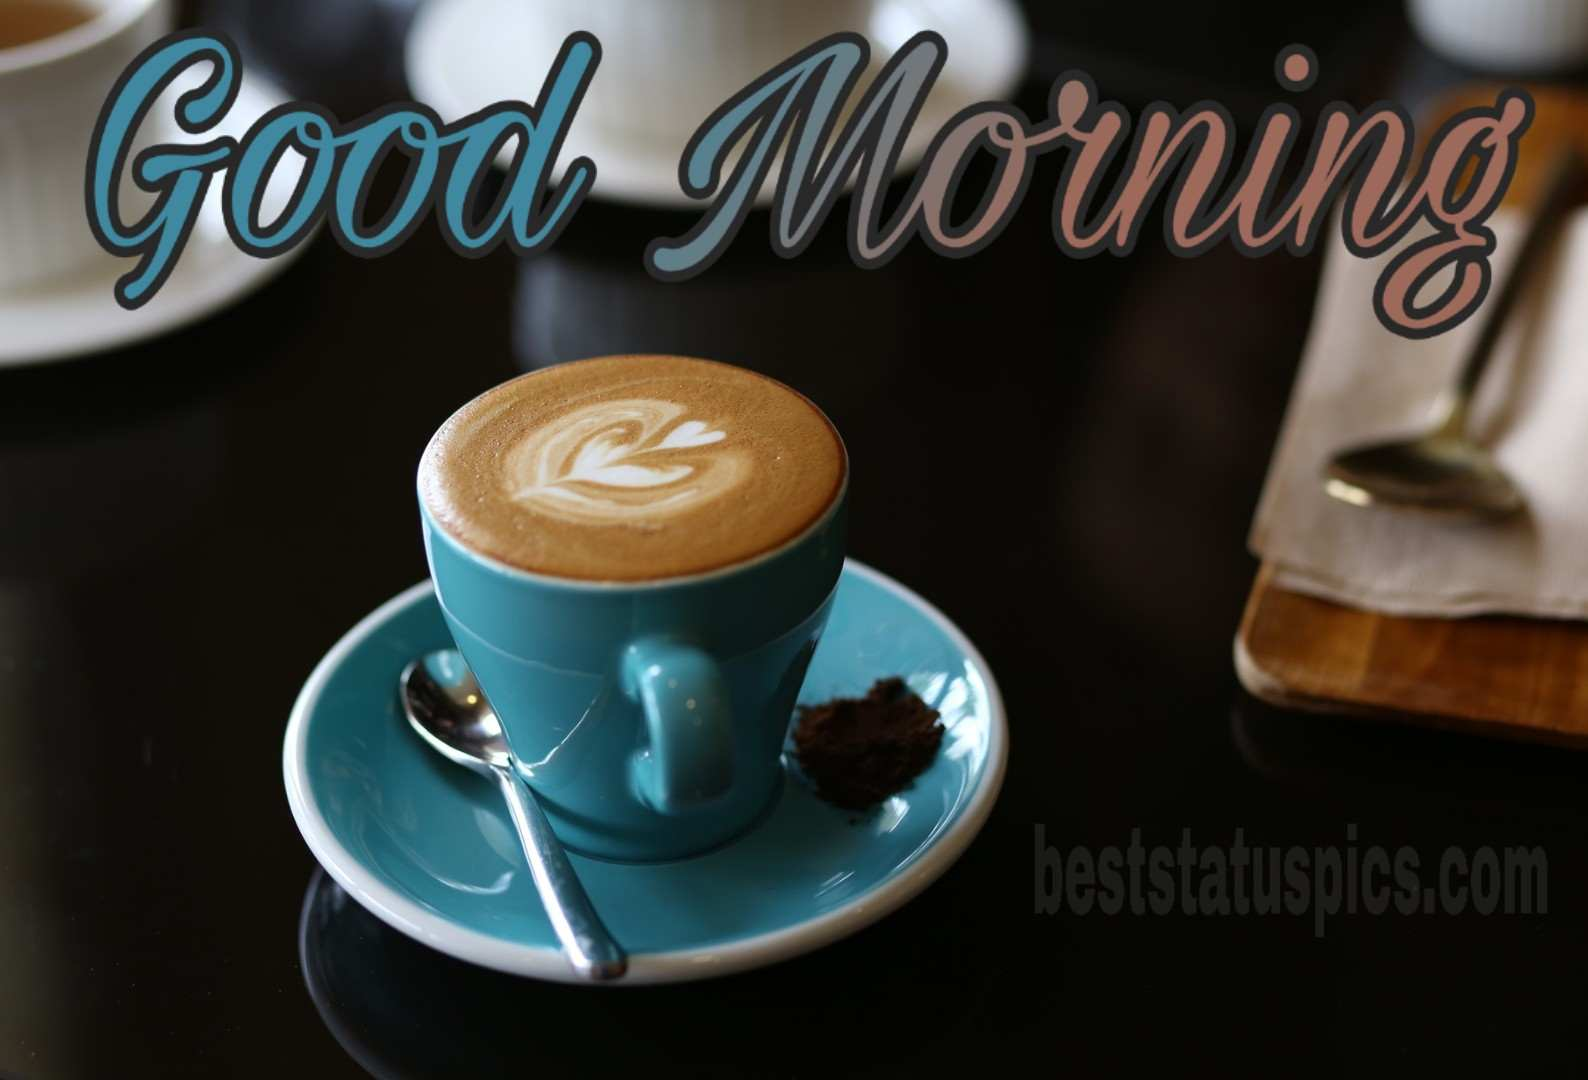 Good morning picture with coffee cup and love heart symbol